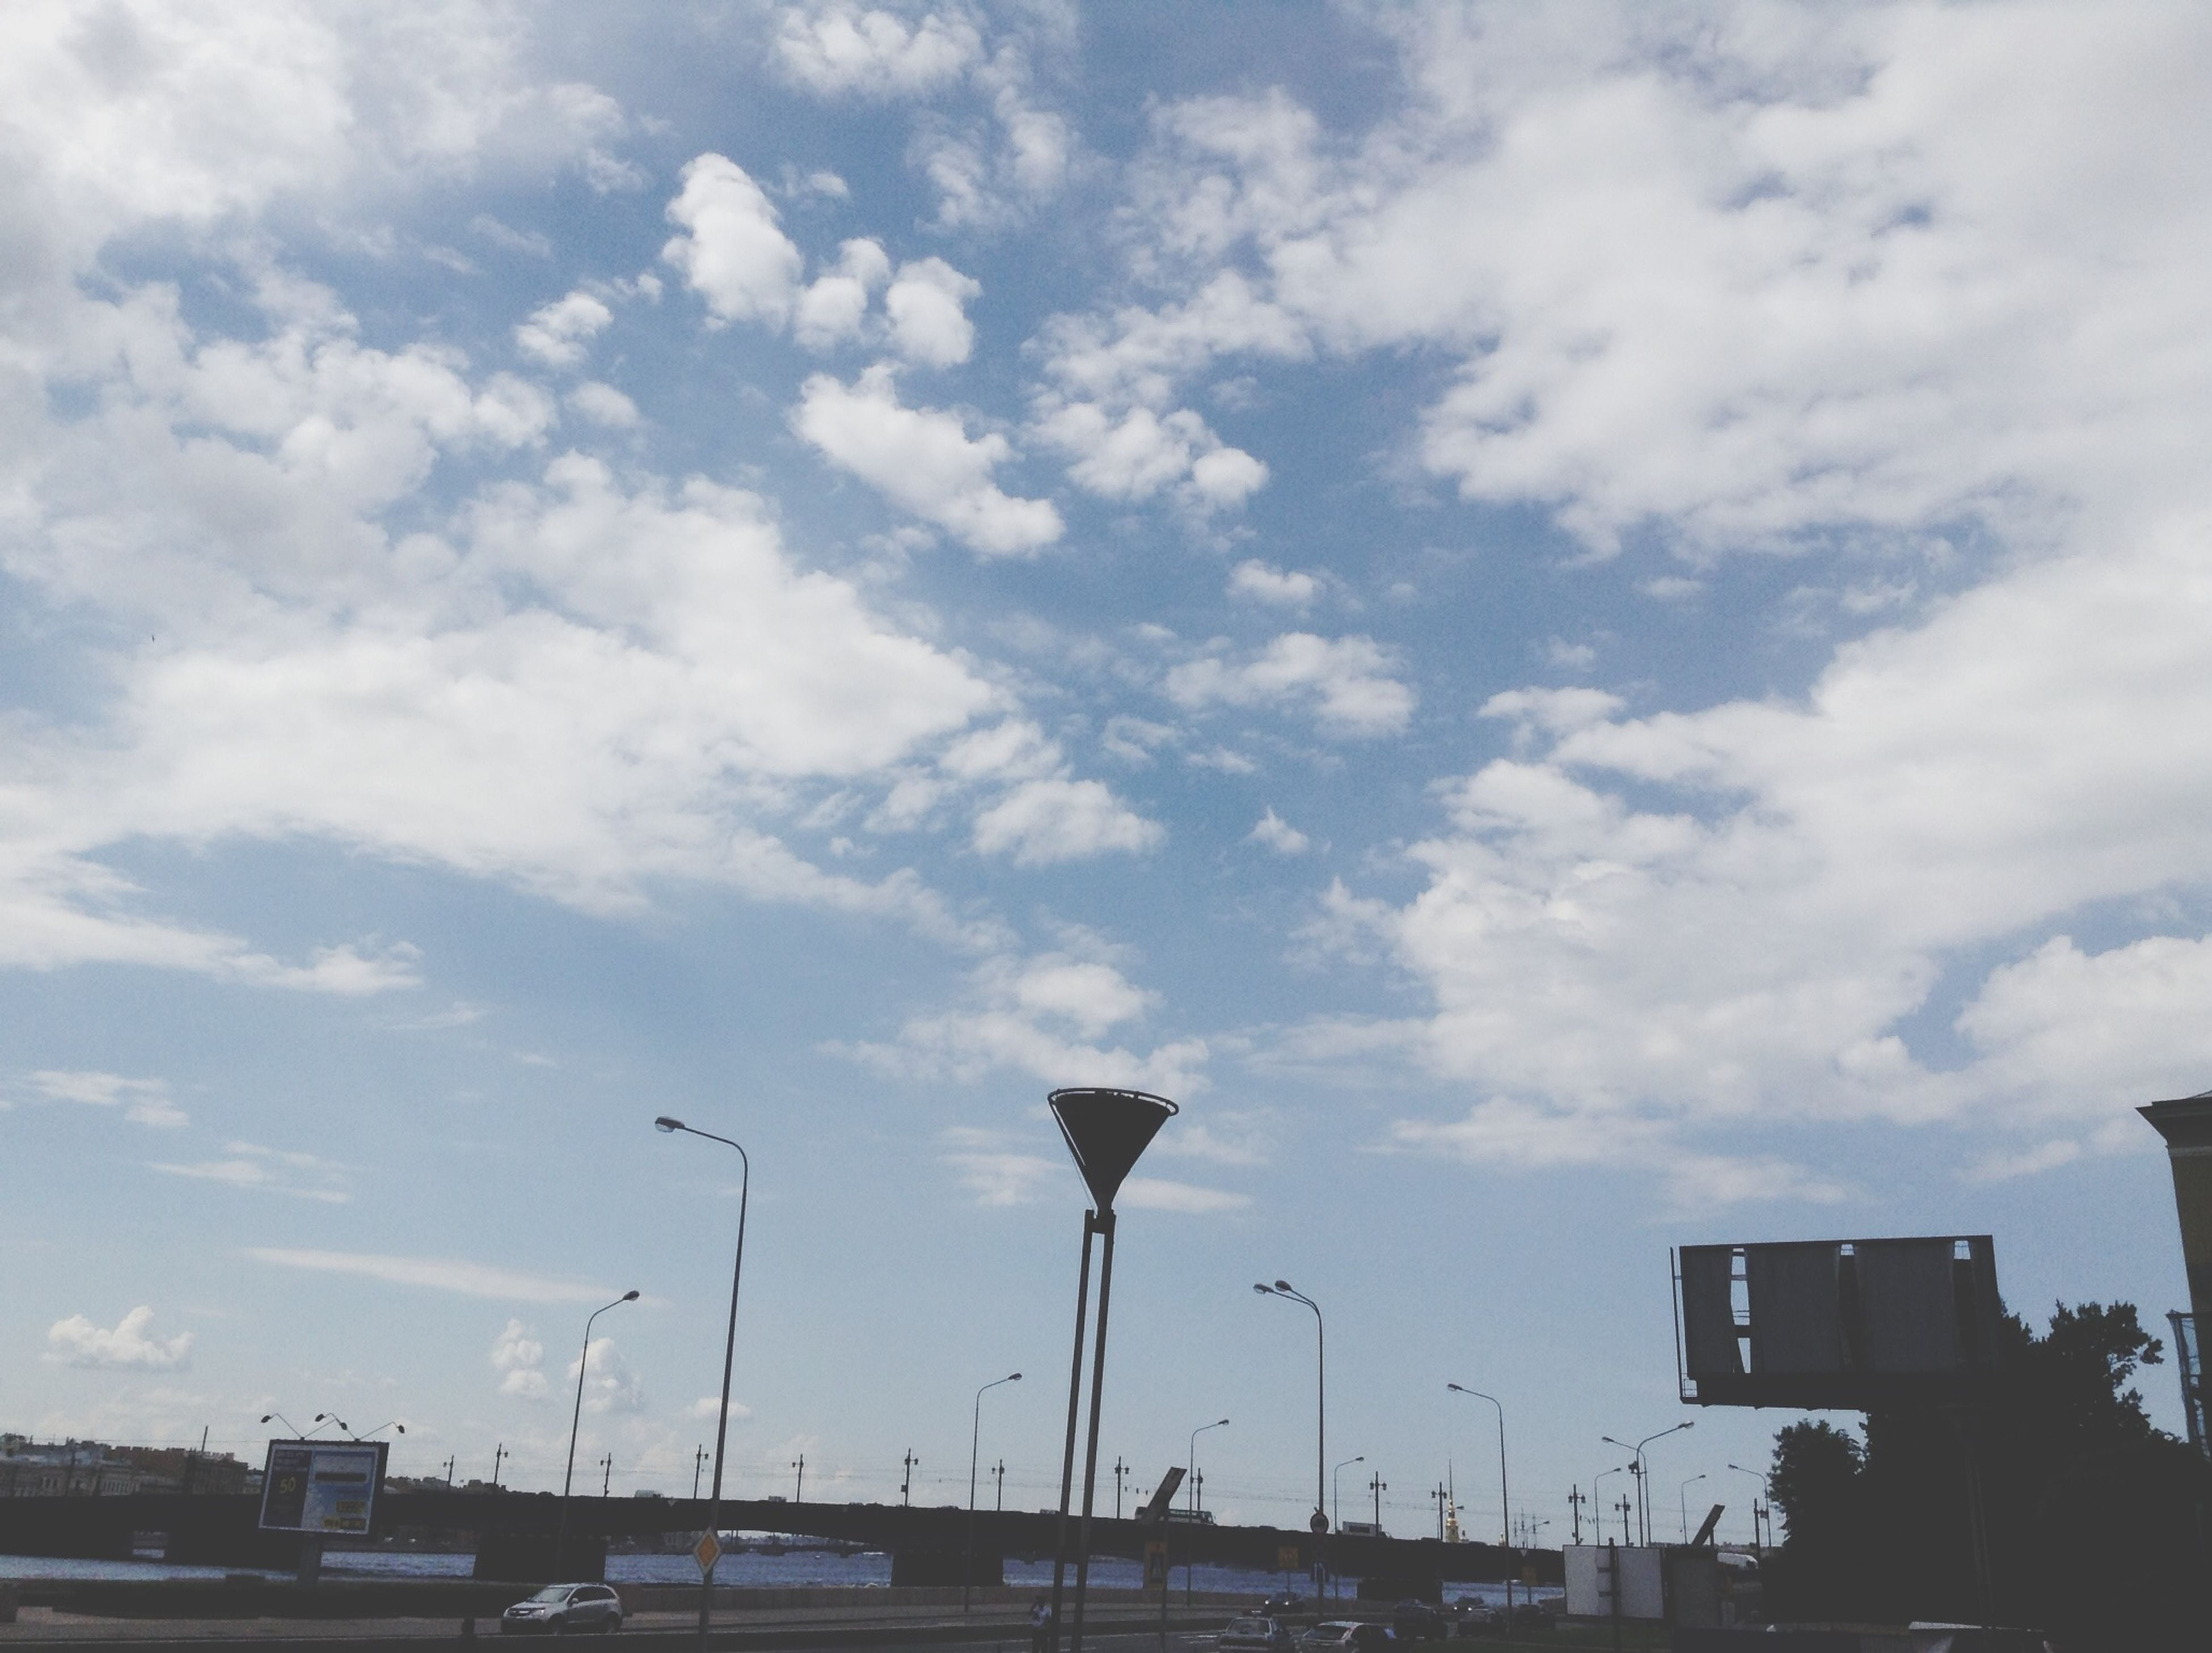 sky, cloud - sky, low angle view, cloudy, building exterior, built structure, cloud, architecture, flying, transportation, day, outdoors, no people, city, nature, mode of transport, weather, bird, building, overcast